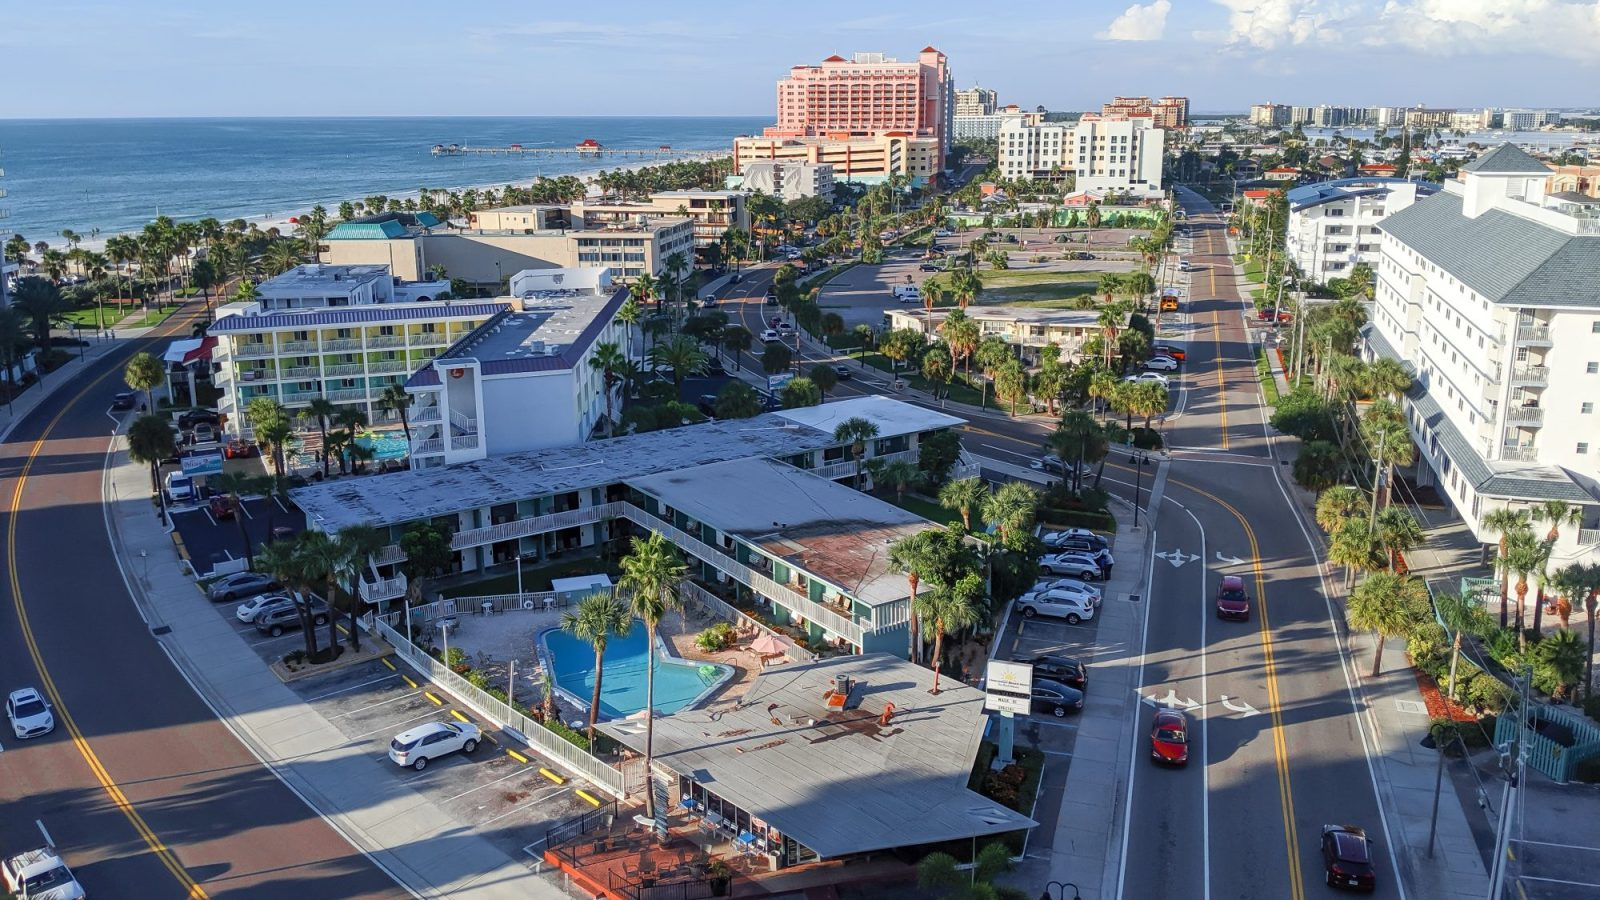 My 5 Favorite Ways I Spend a Weekend in Clearwater, Florida   Clearwater Beach, Clearwater Marine Aquarium, kayaking, eating and drinking, baseball #clearwater #florida #clearwaterbeach